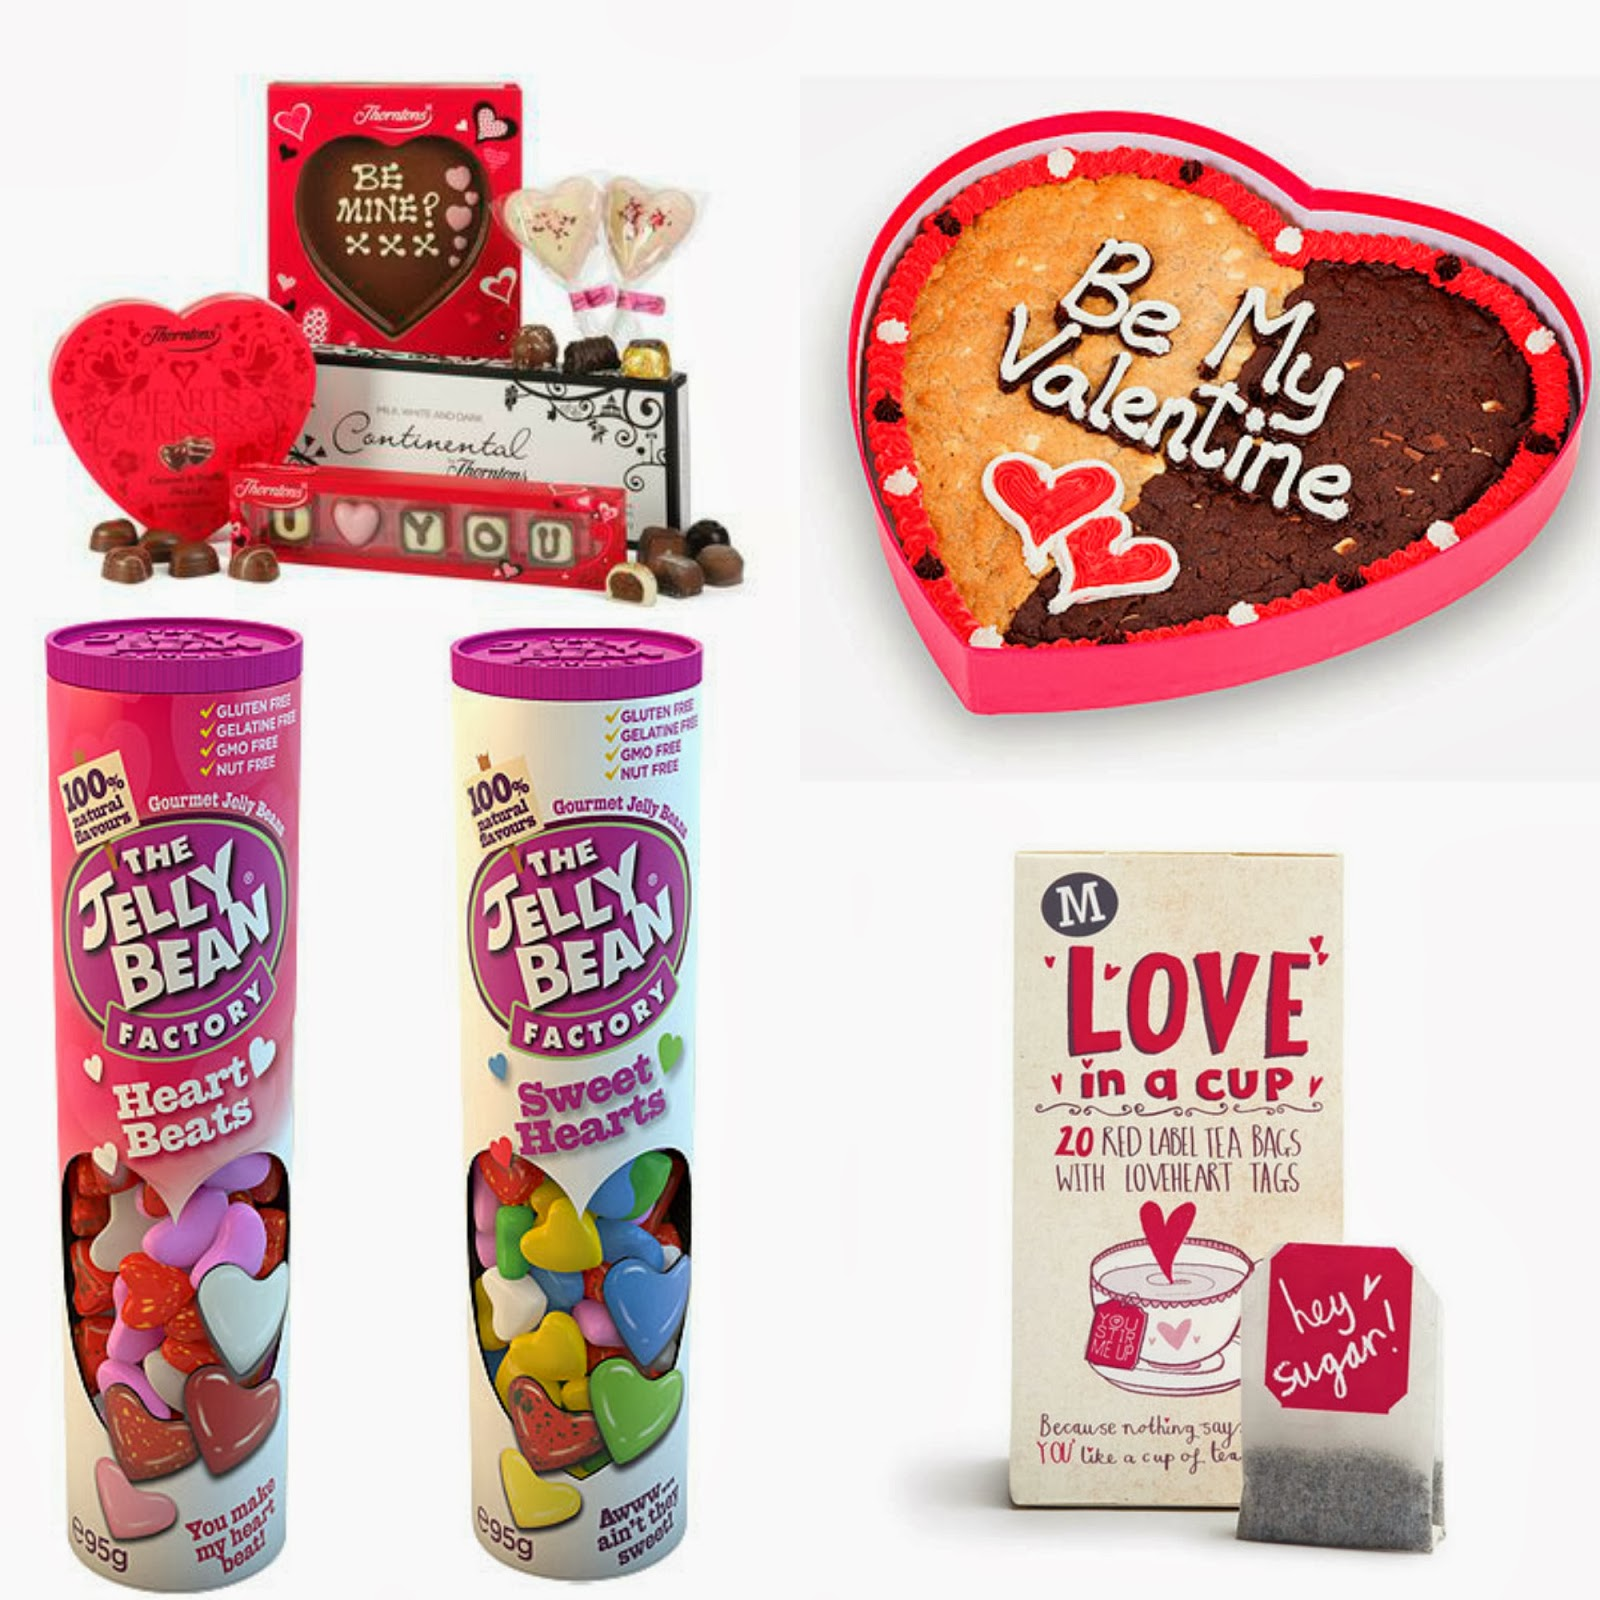 Thorntons I Love You Valentines Gift Collection - £15.00